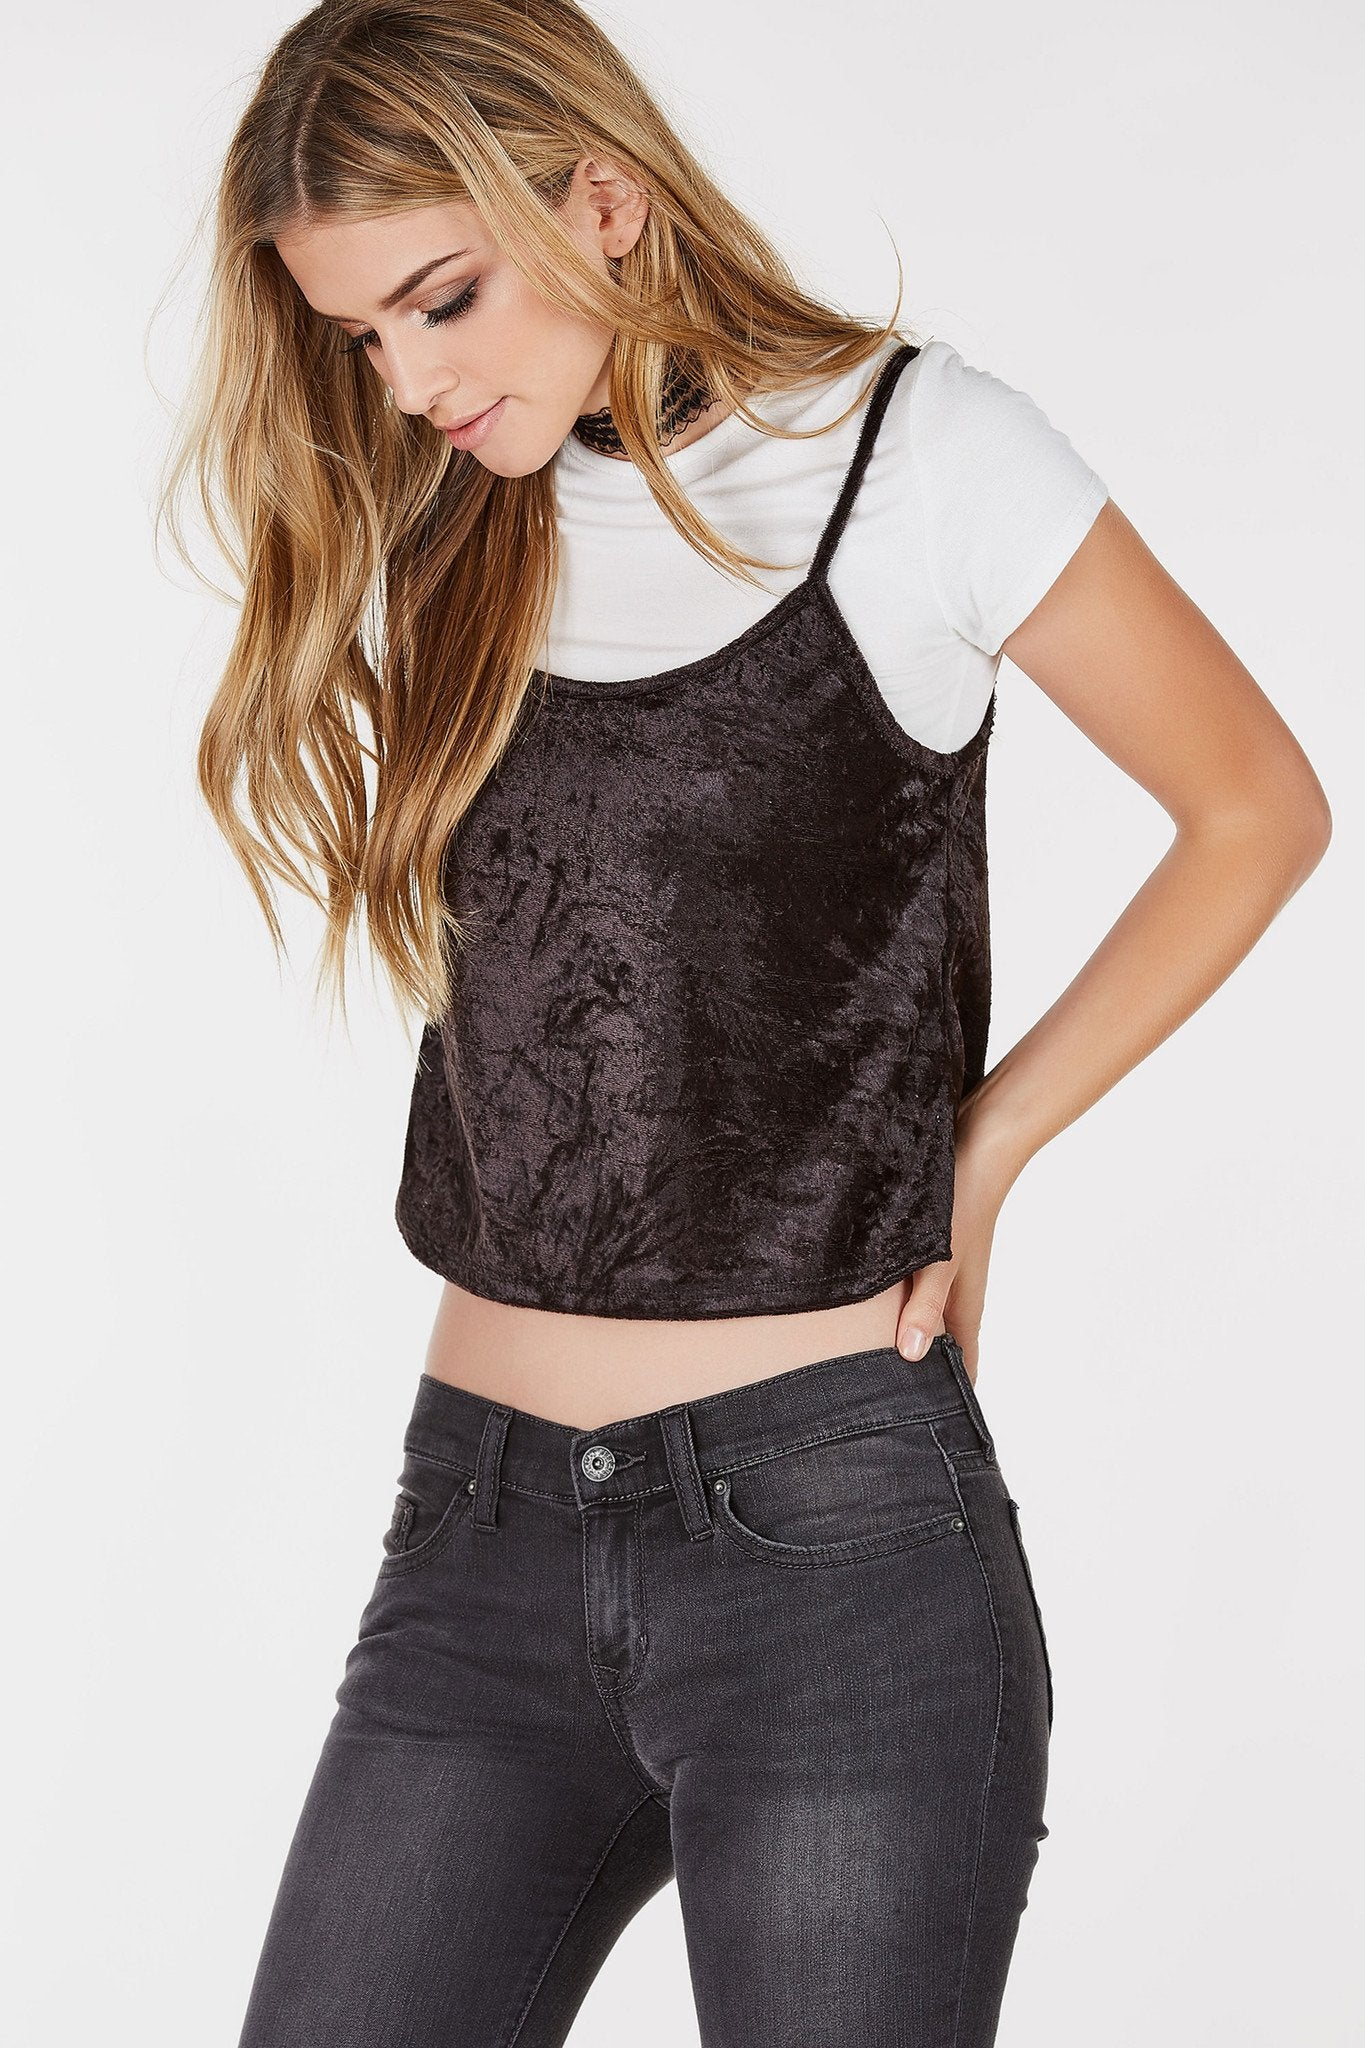 Round neck short sleeve t-shirt with velvet cropped cami layered on top. Relaxed fit with straight hem all around.